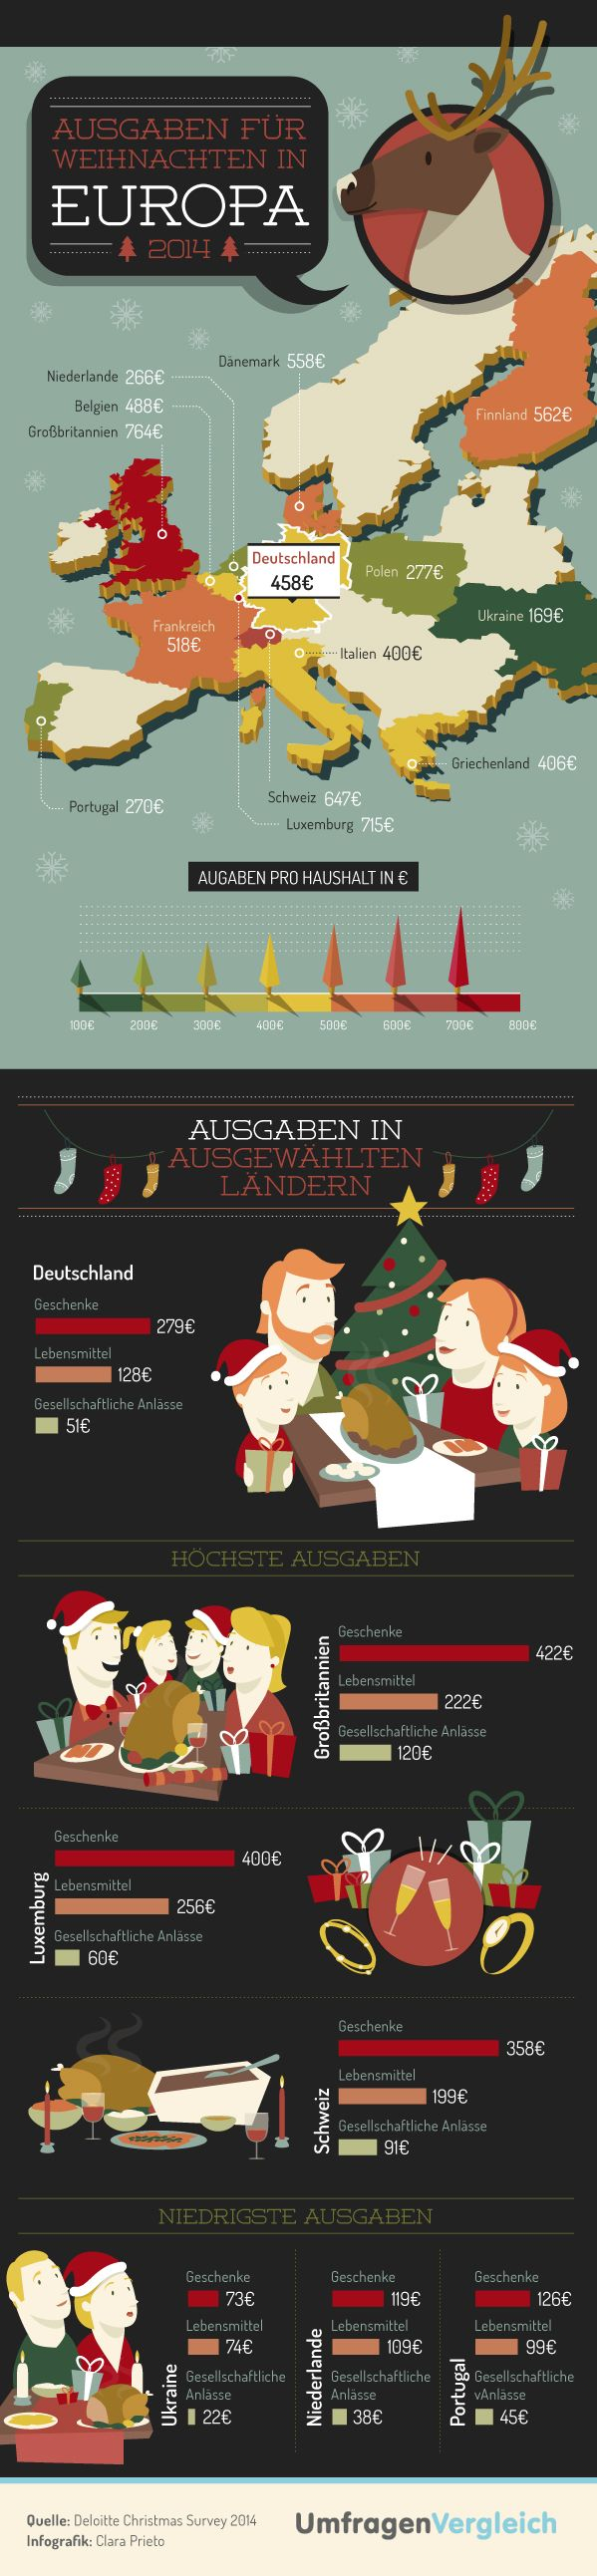 [Infographic] Expenditures For Christmas In Germany 2014 (Ausgaben fuer Weihnachten in Deutschland 2014)